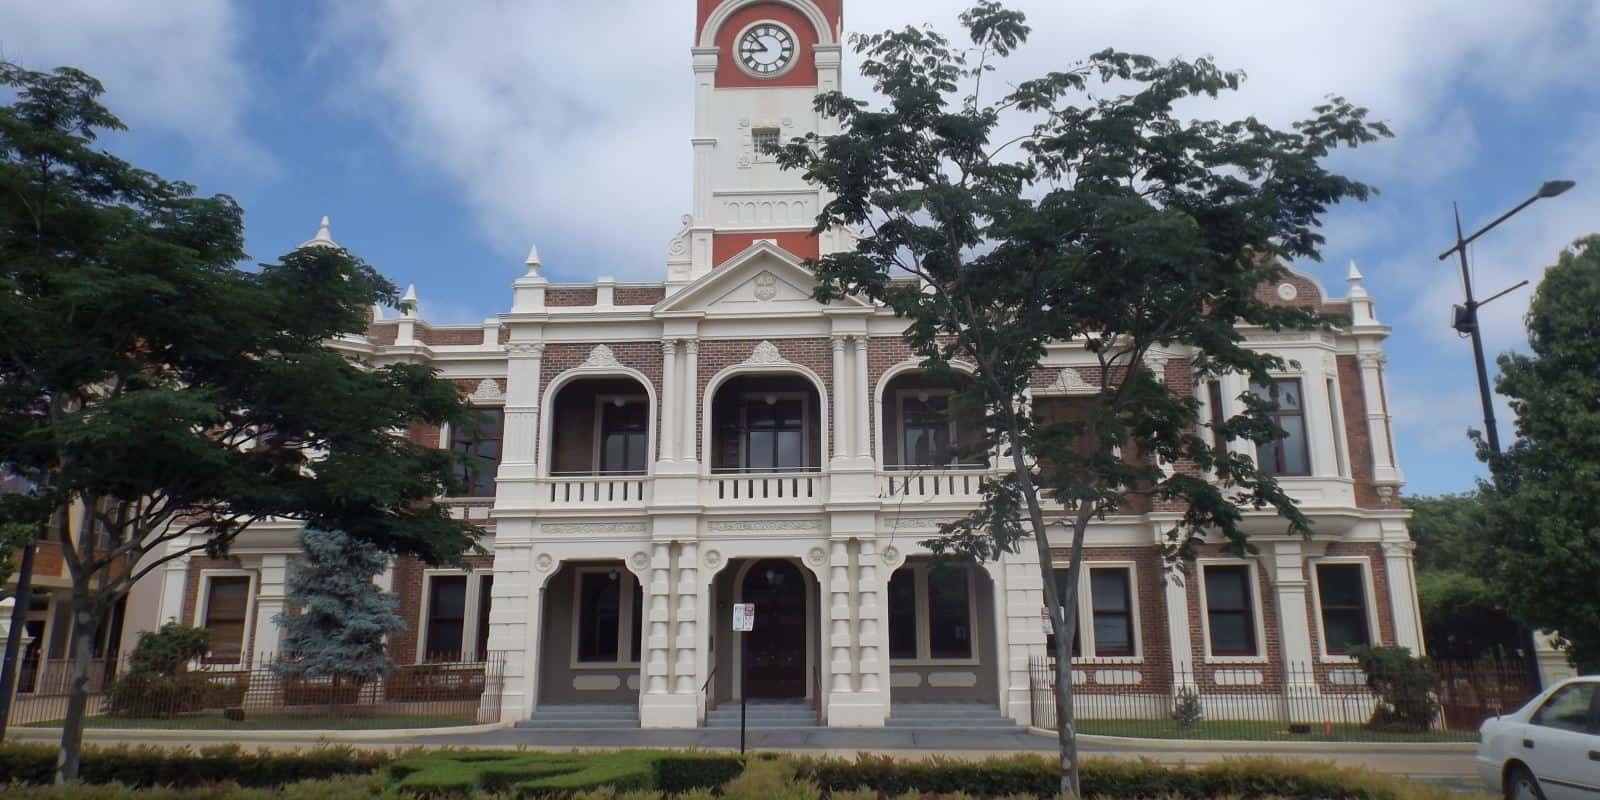 Toowoomba City Hall frontage with trees